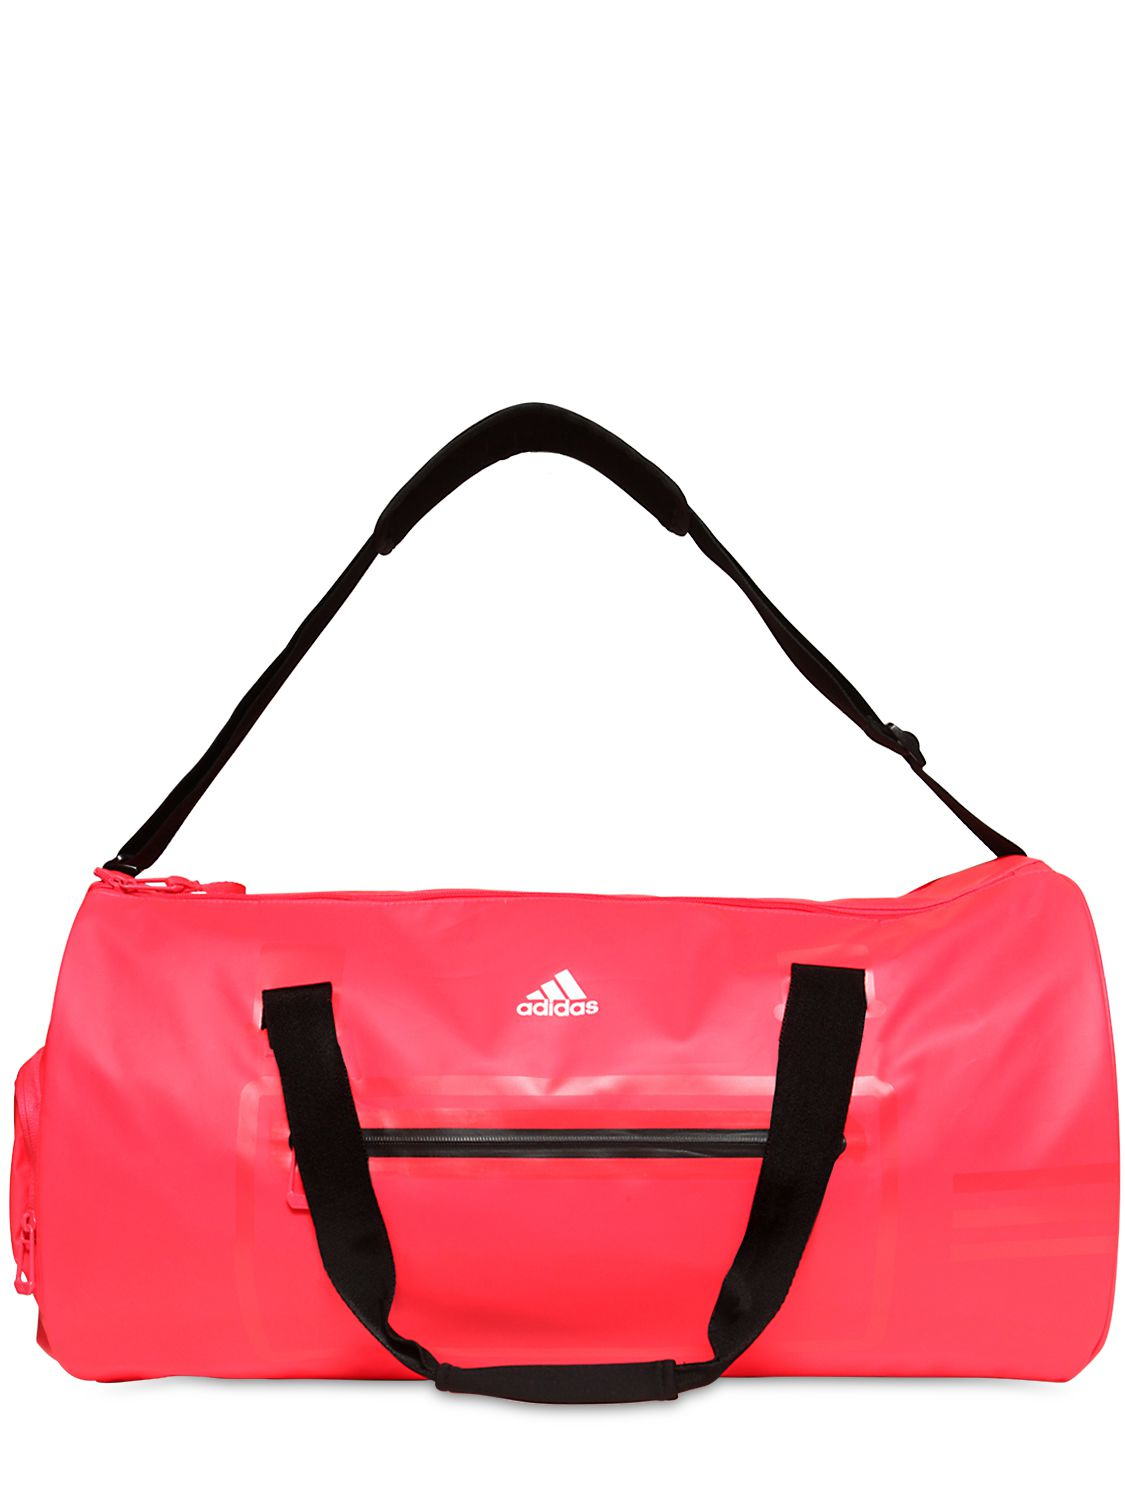 114dffa7db0 Lyst - adidas Originals Water Repellent Coated Nylon Duffle Bag in Red